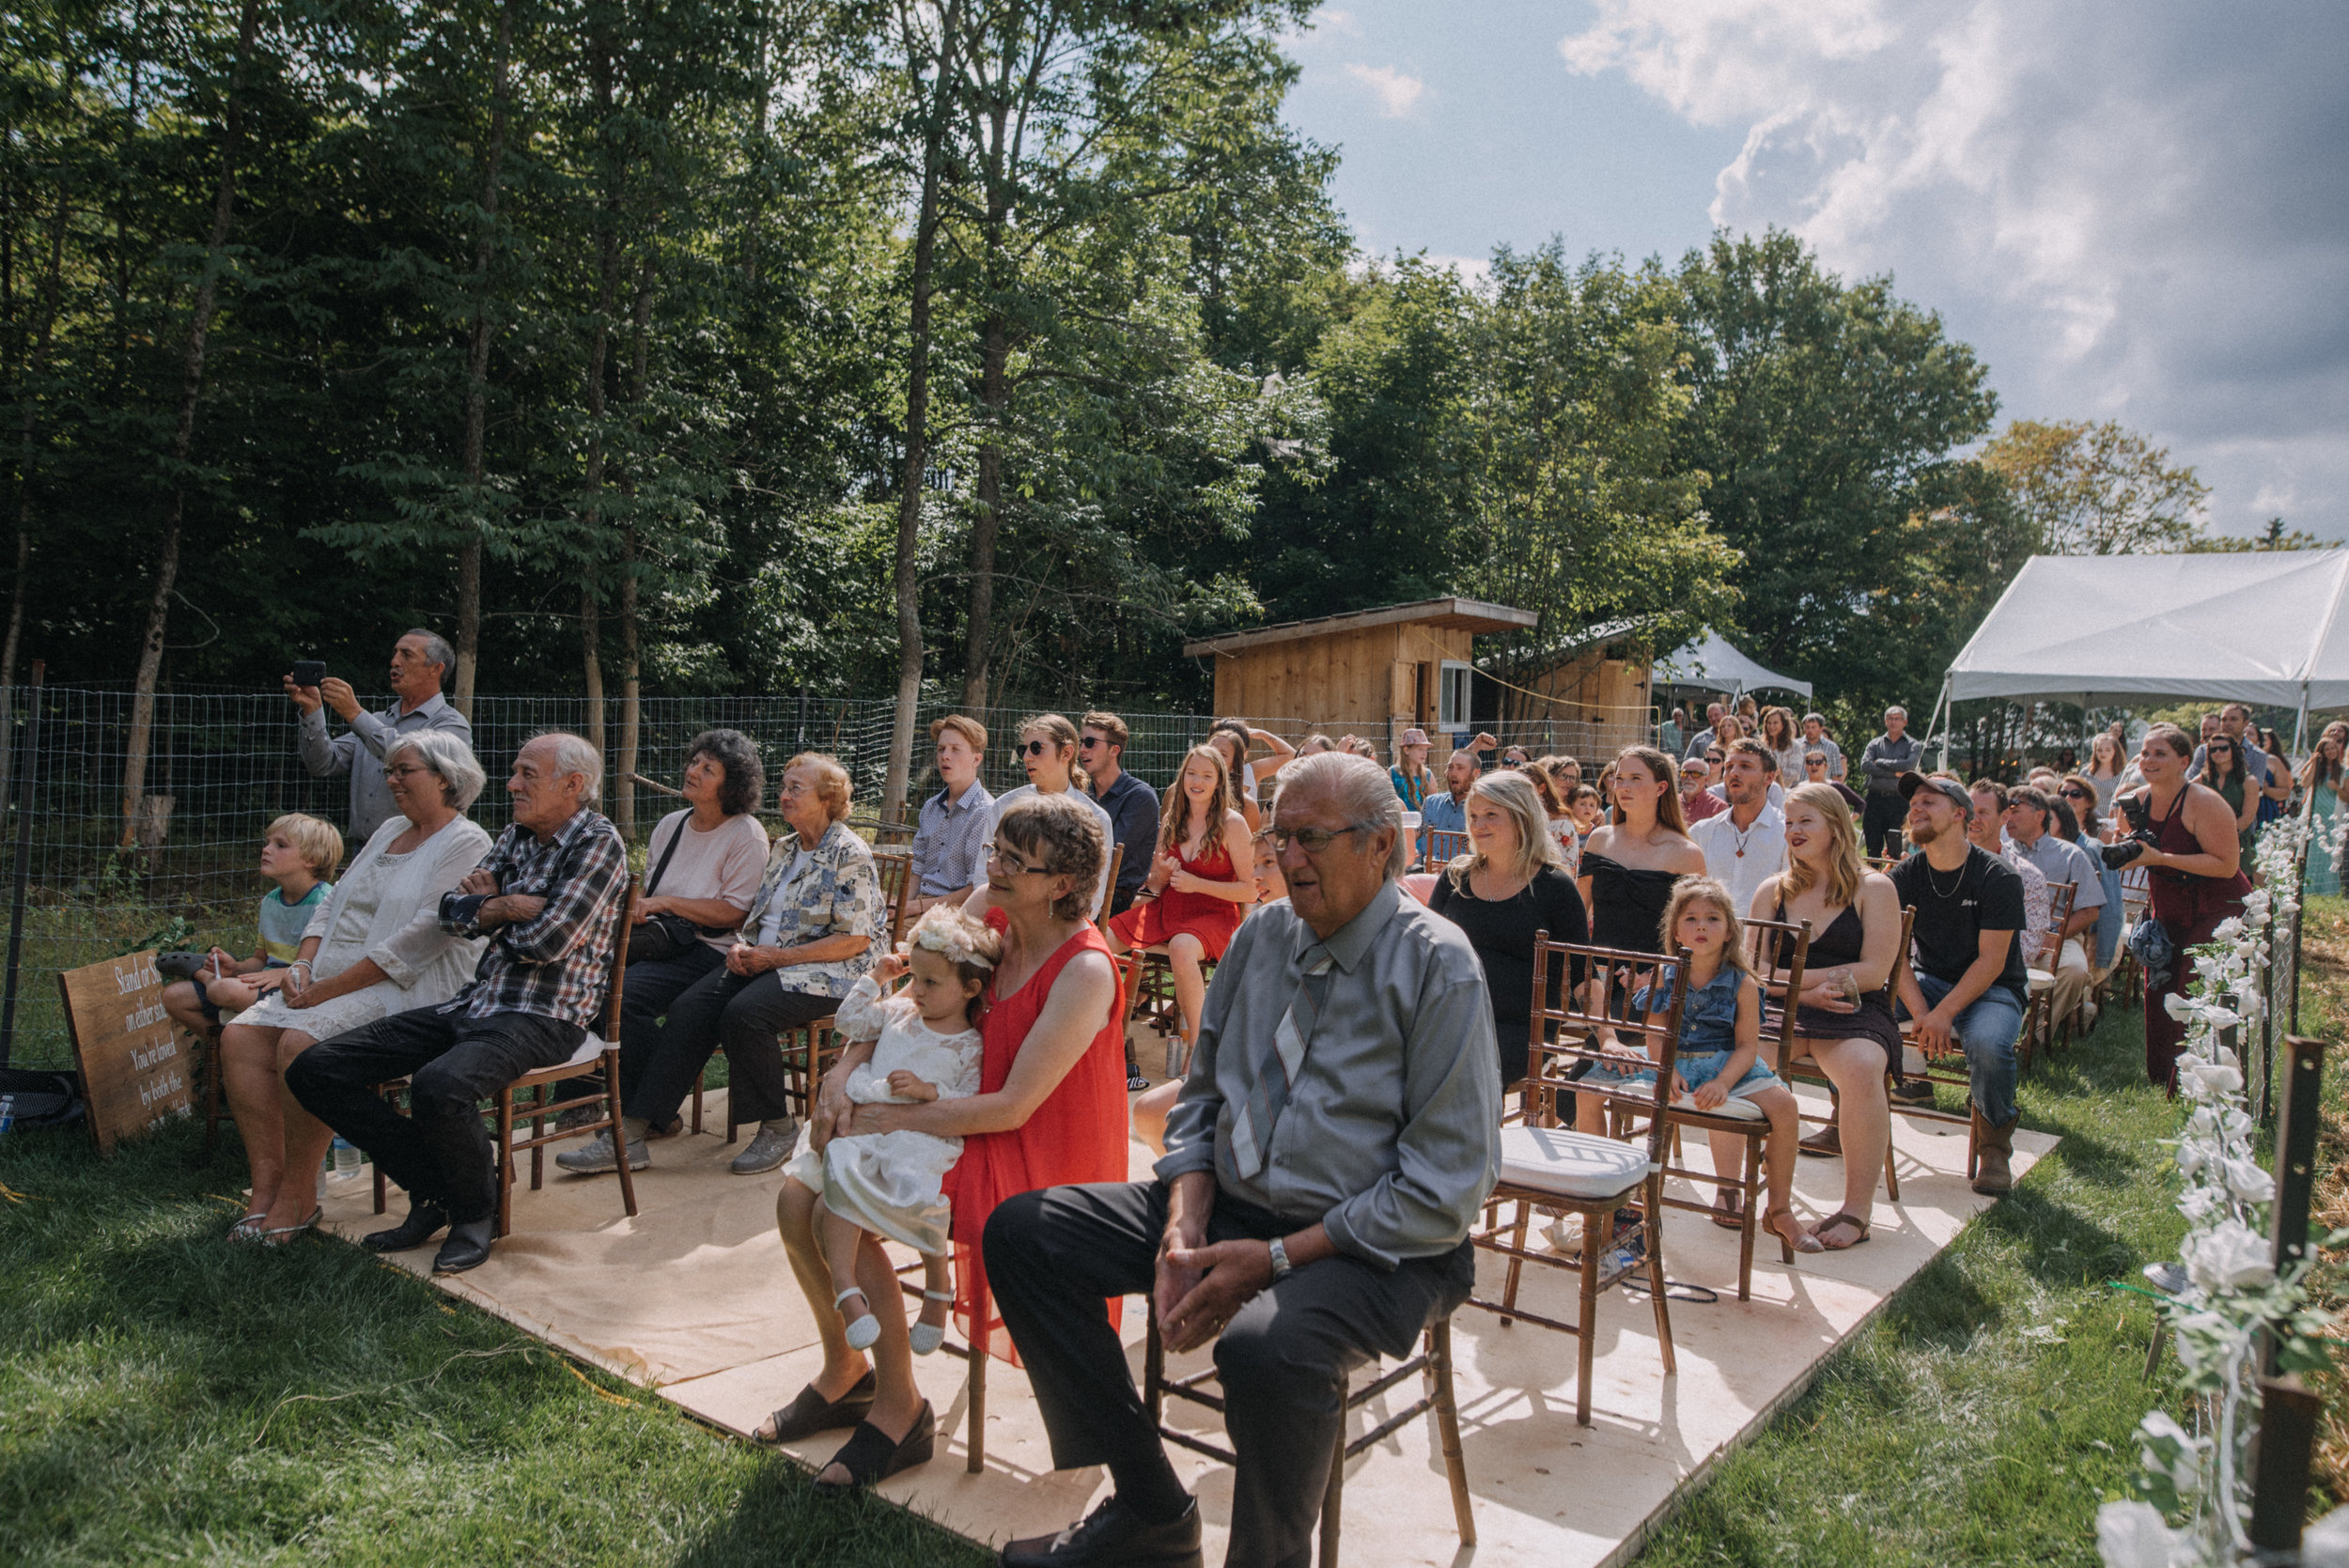 ottawa_wedding_photographer_gatineau_photographe_mariage_documentary_candid_photojournalist_natural_raw_boho_wedding_backyard (17).JPG